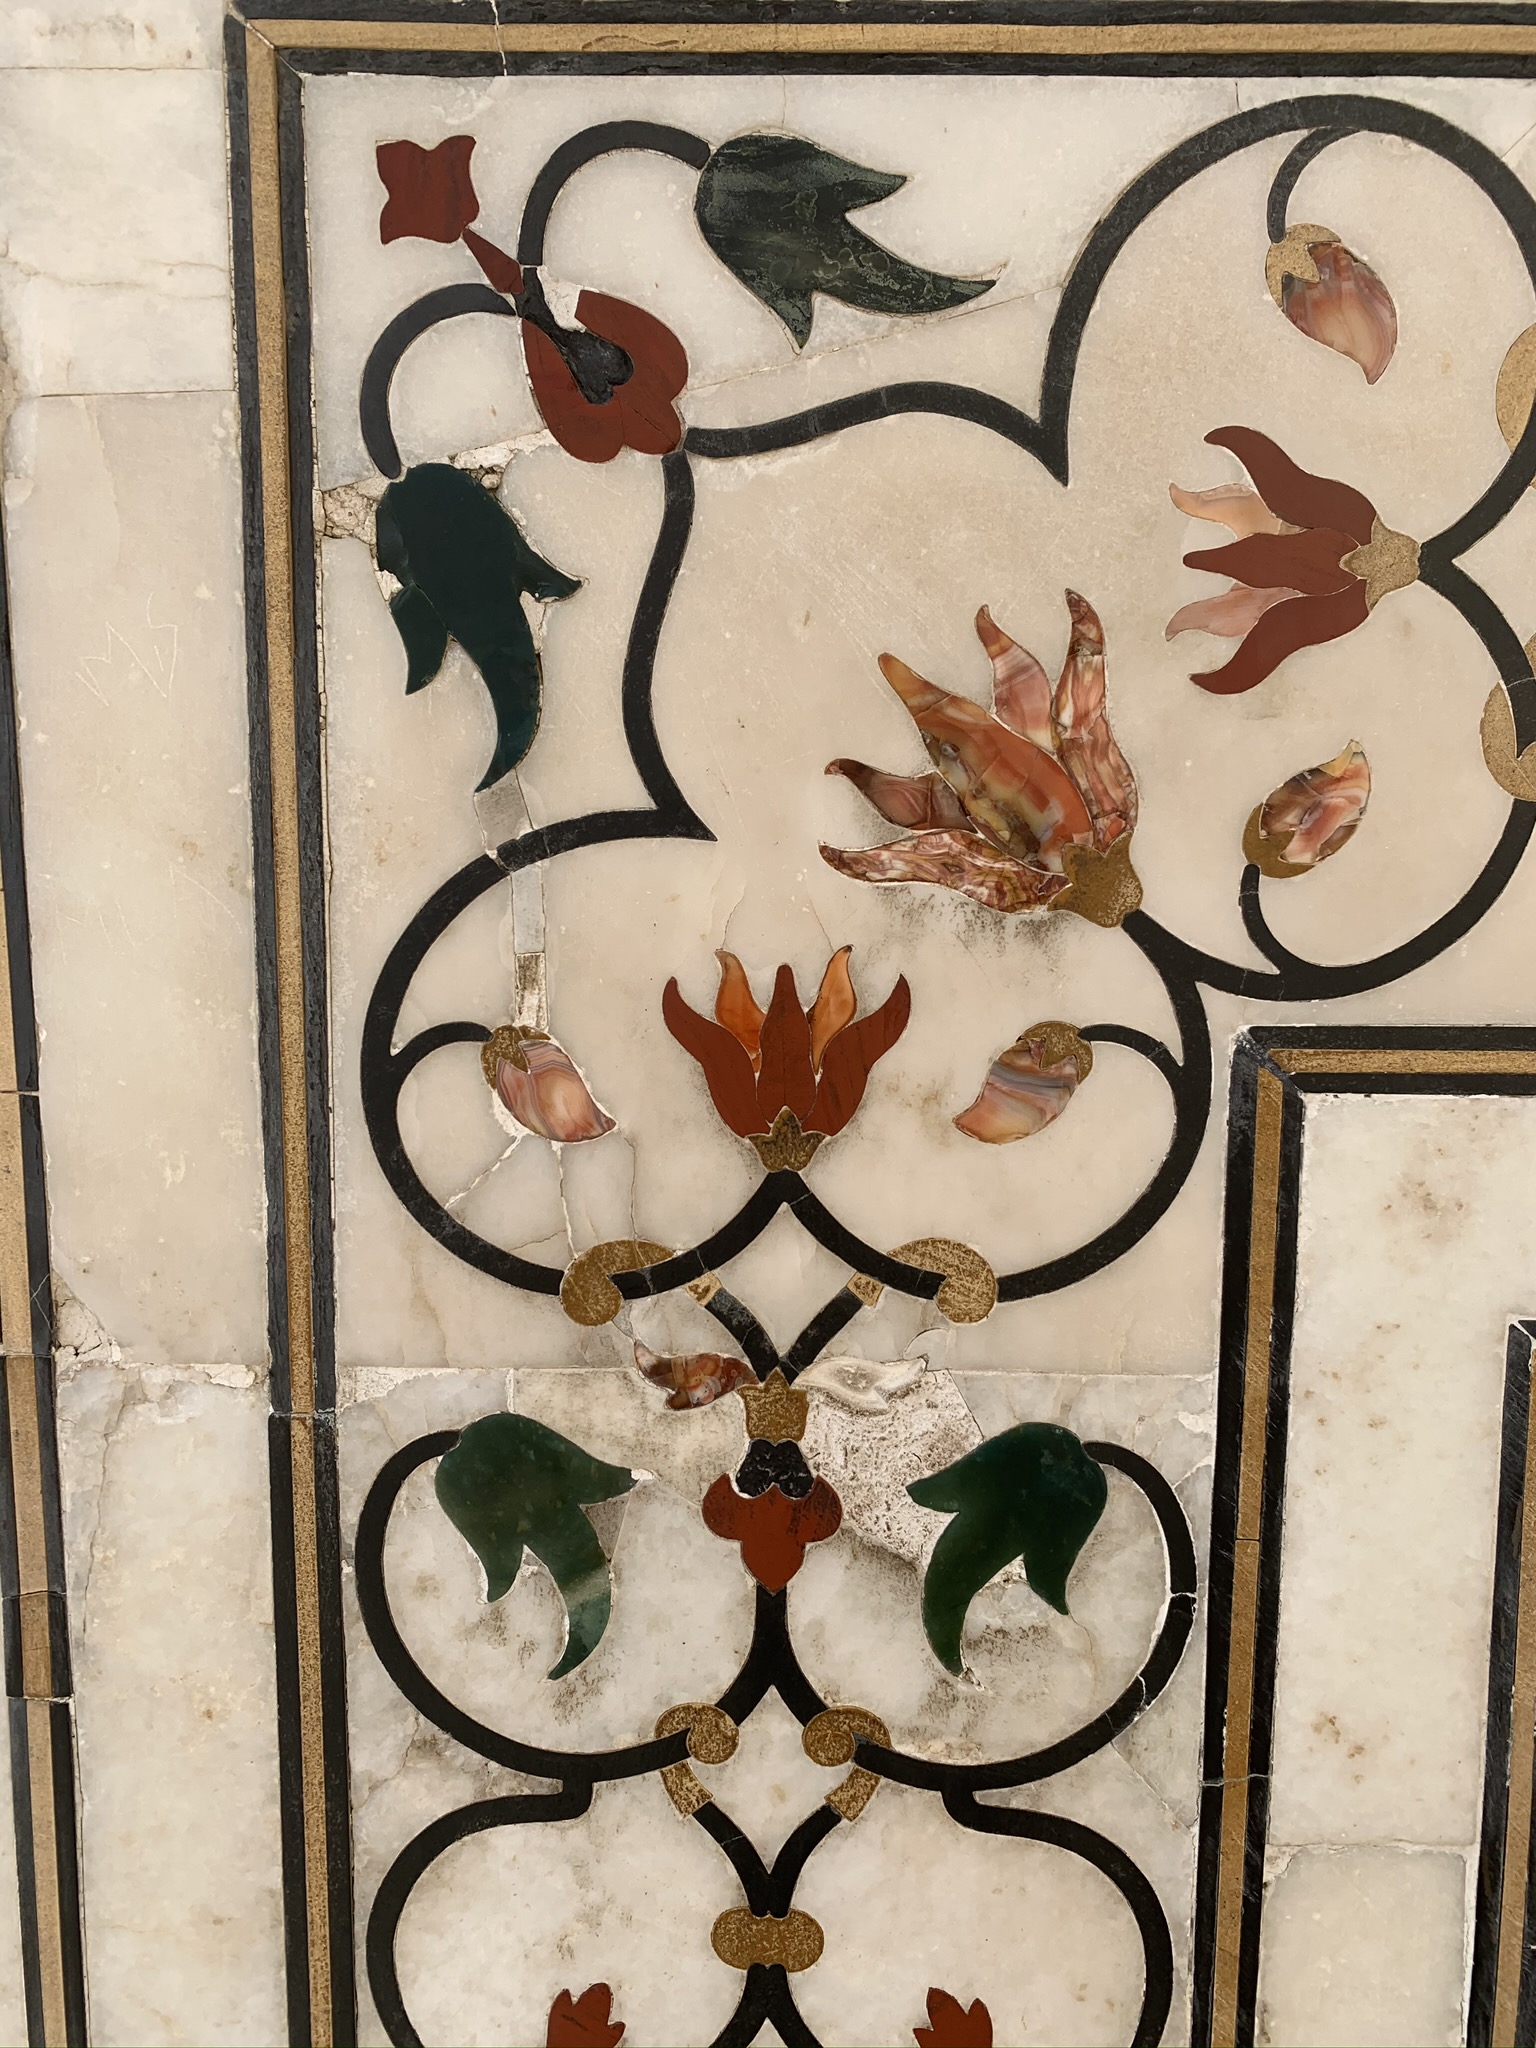 Detail of engraved jewels on Taj Mahal's walls